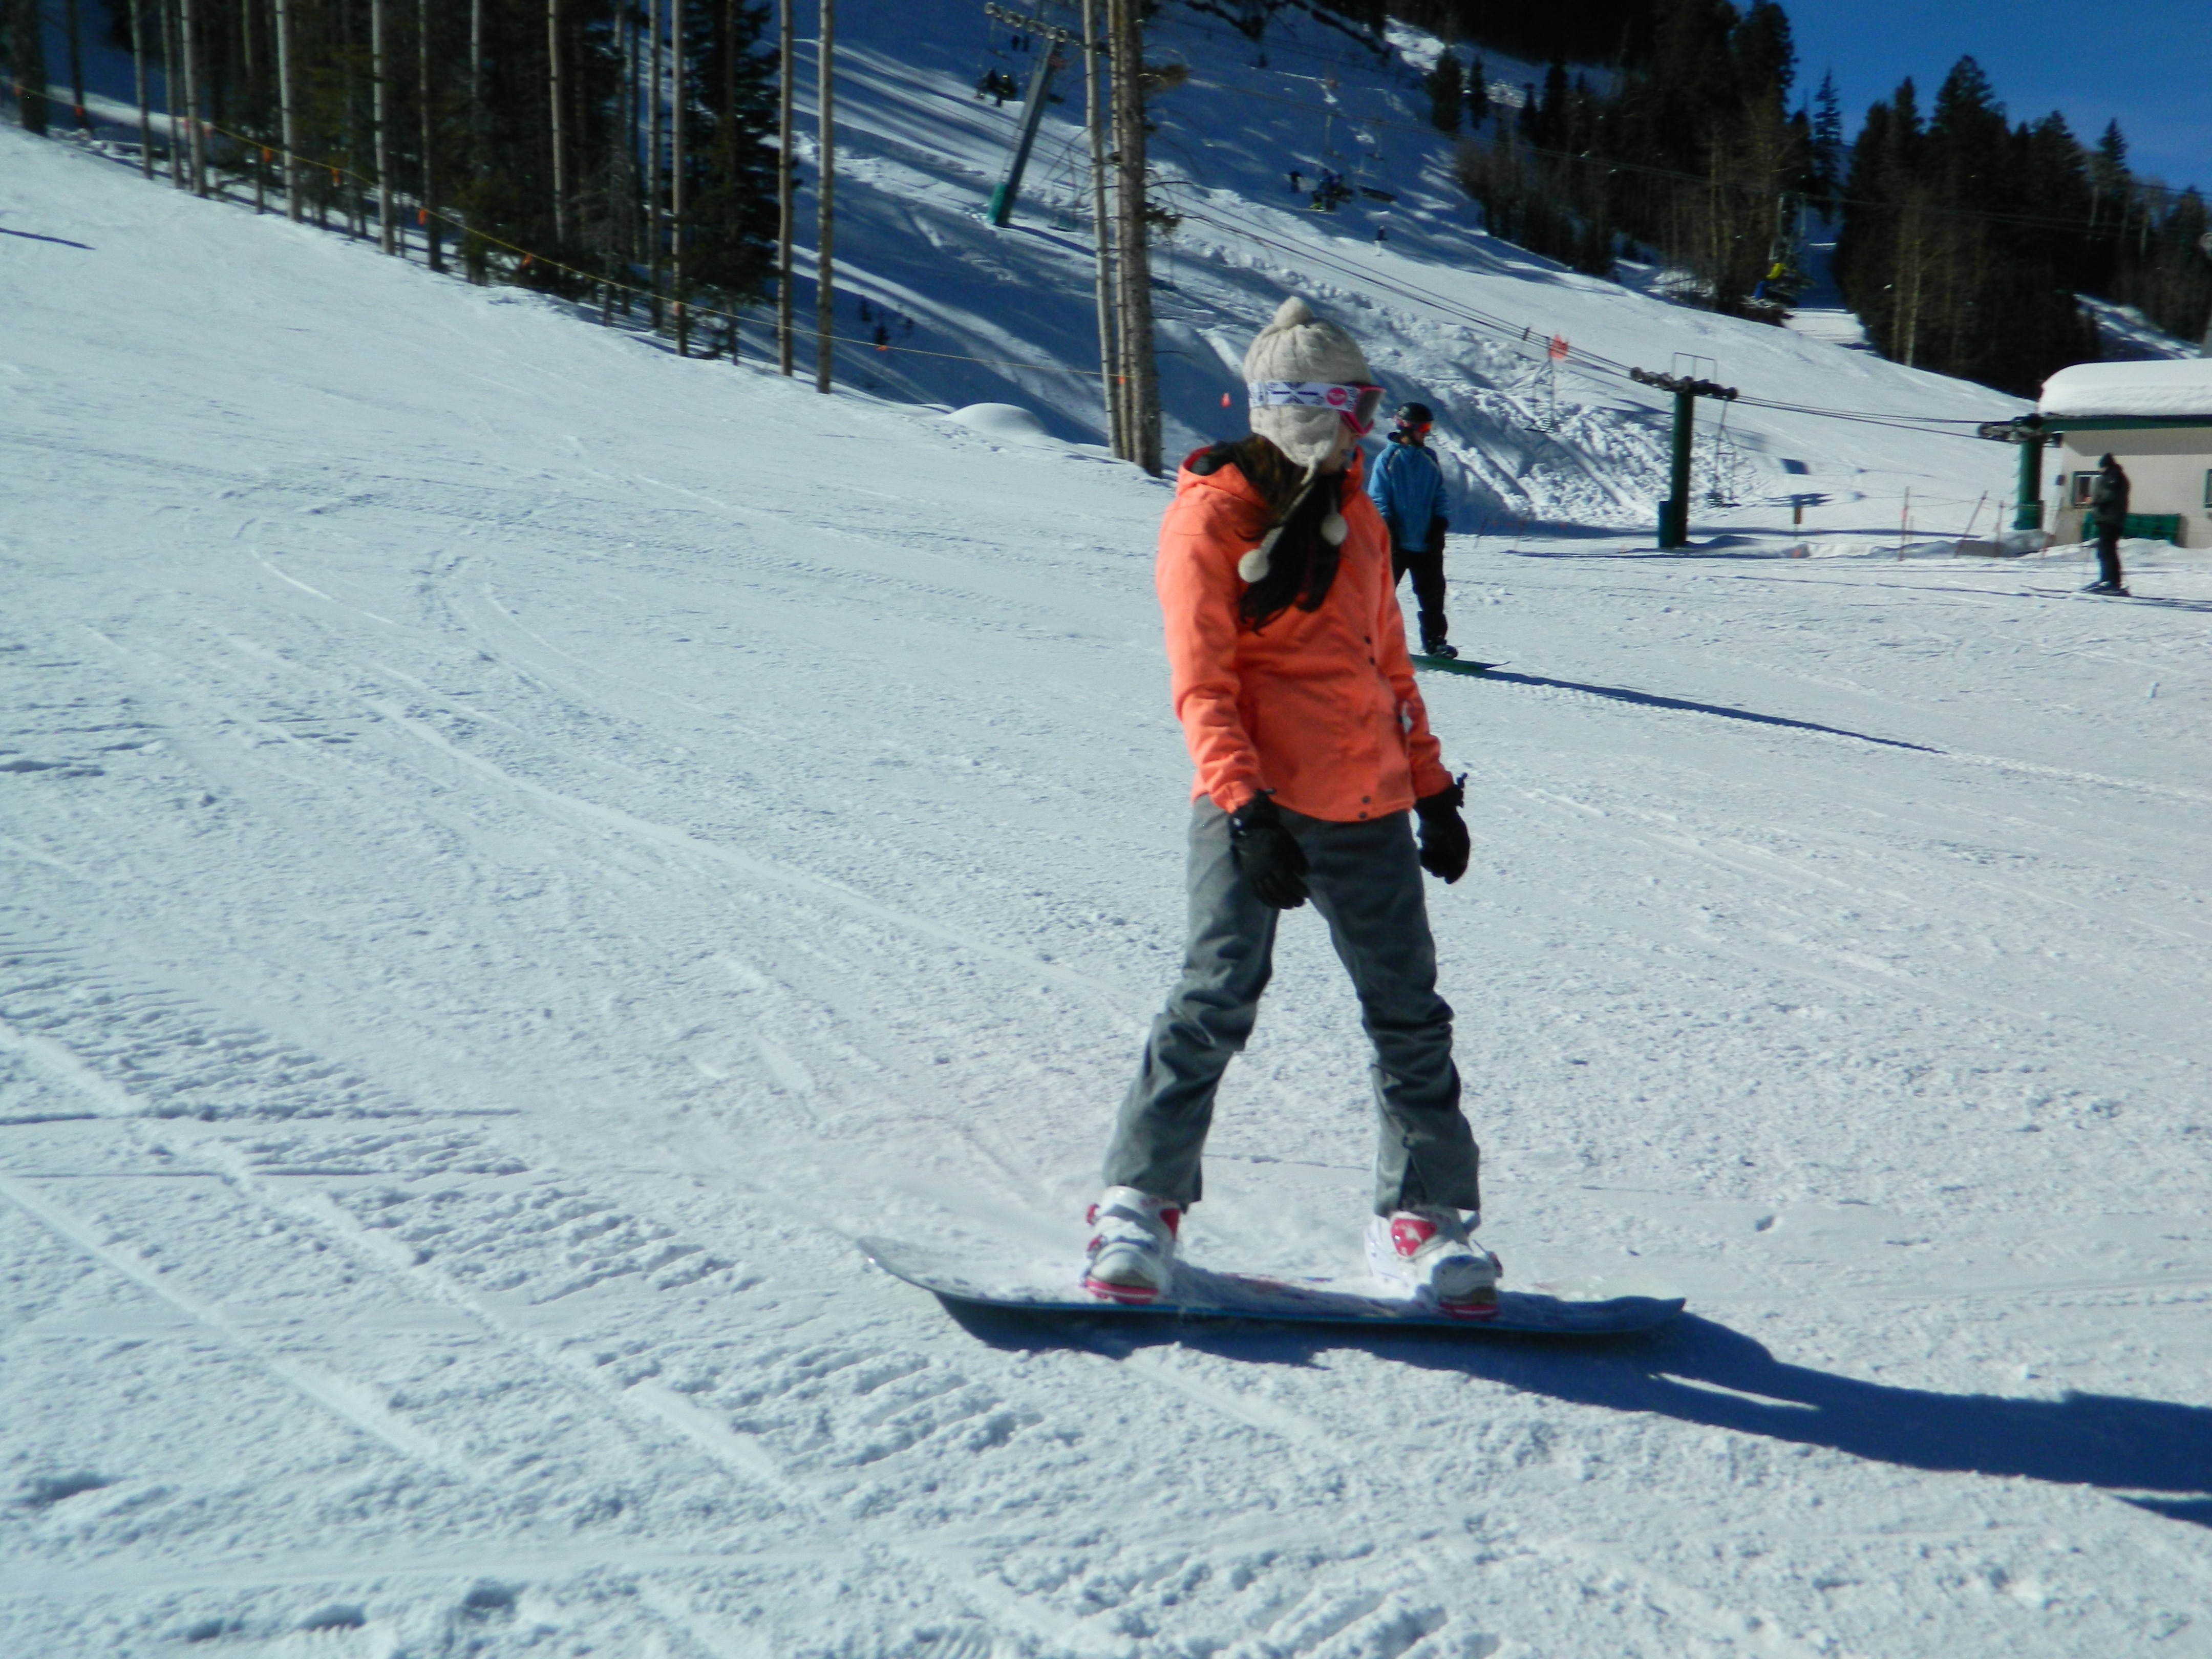 Snowboarder in orange coat slows down at the base of the slope at Taos Ski Valley on a sunny day. Chairlift, skiers behind.